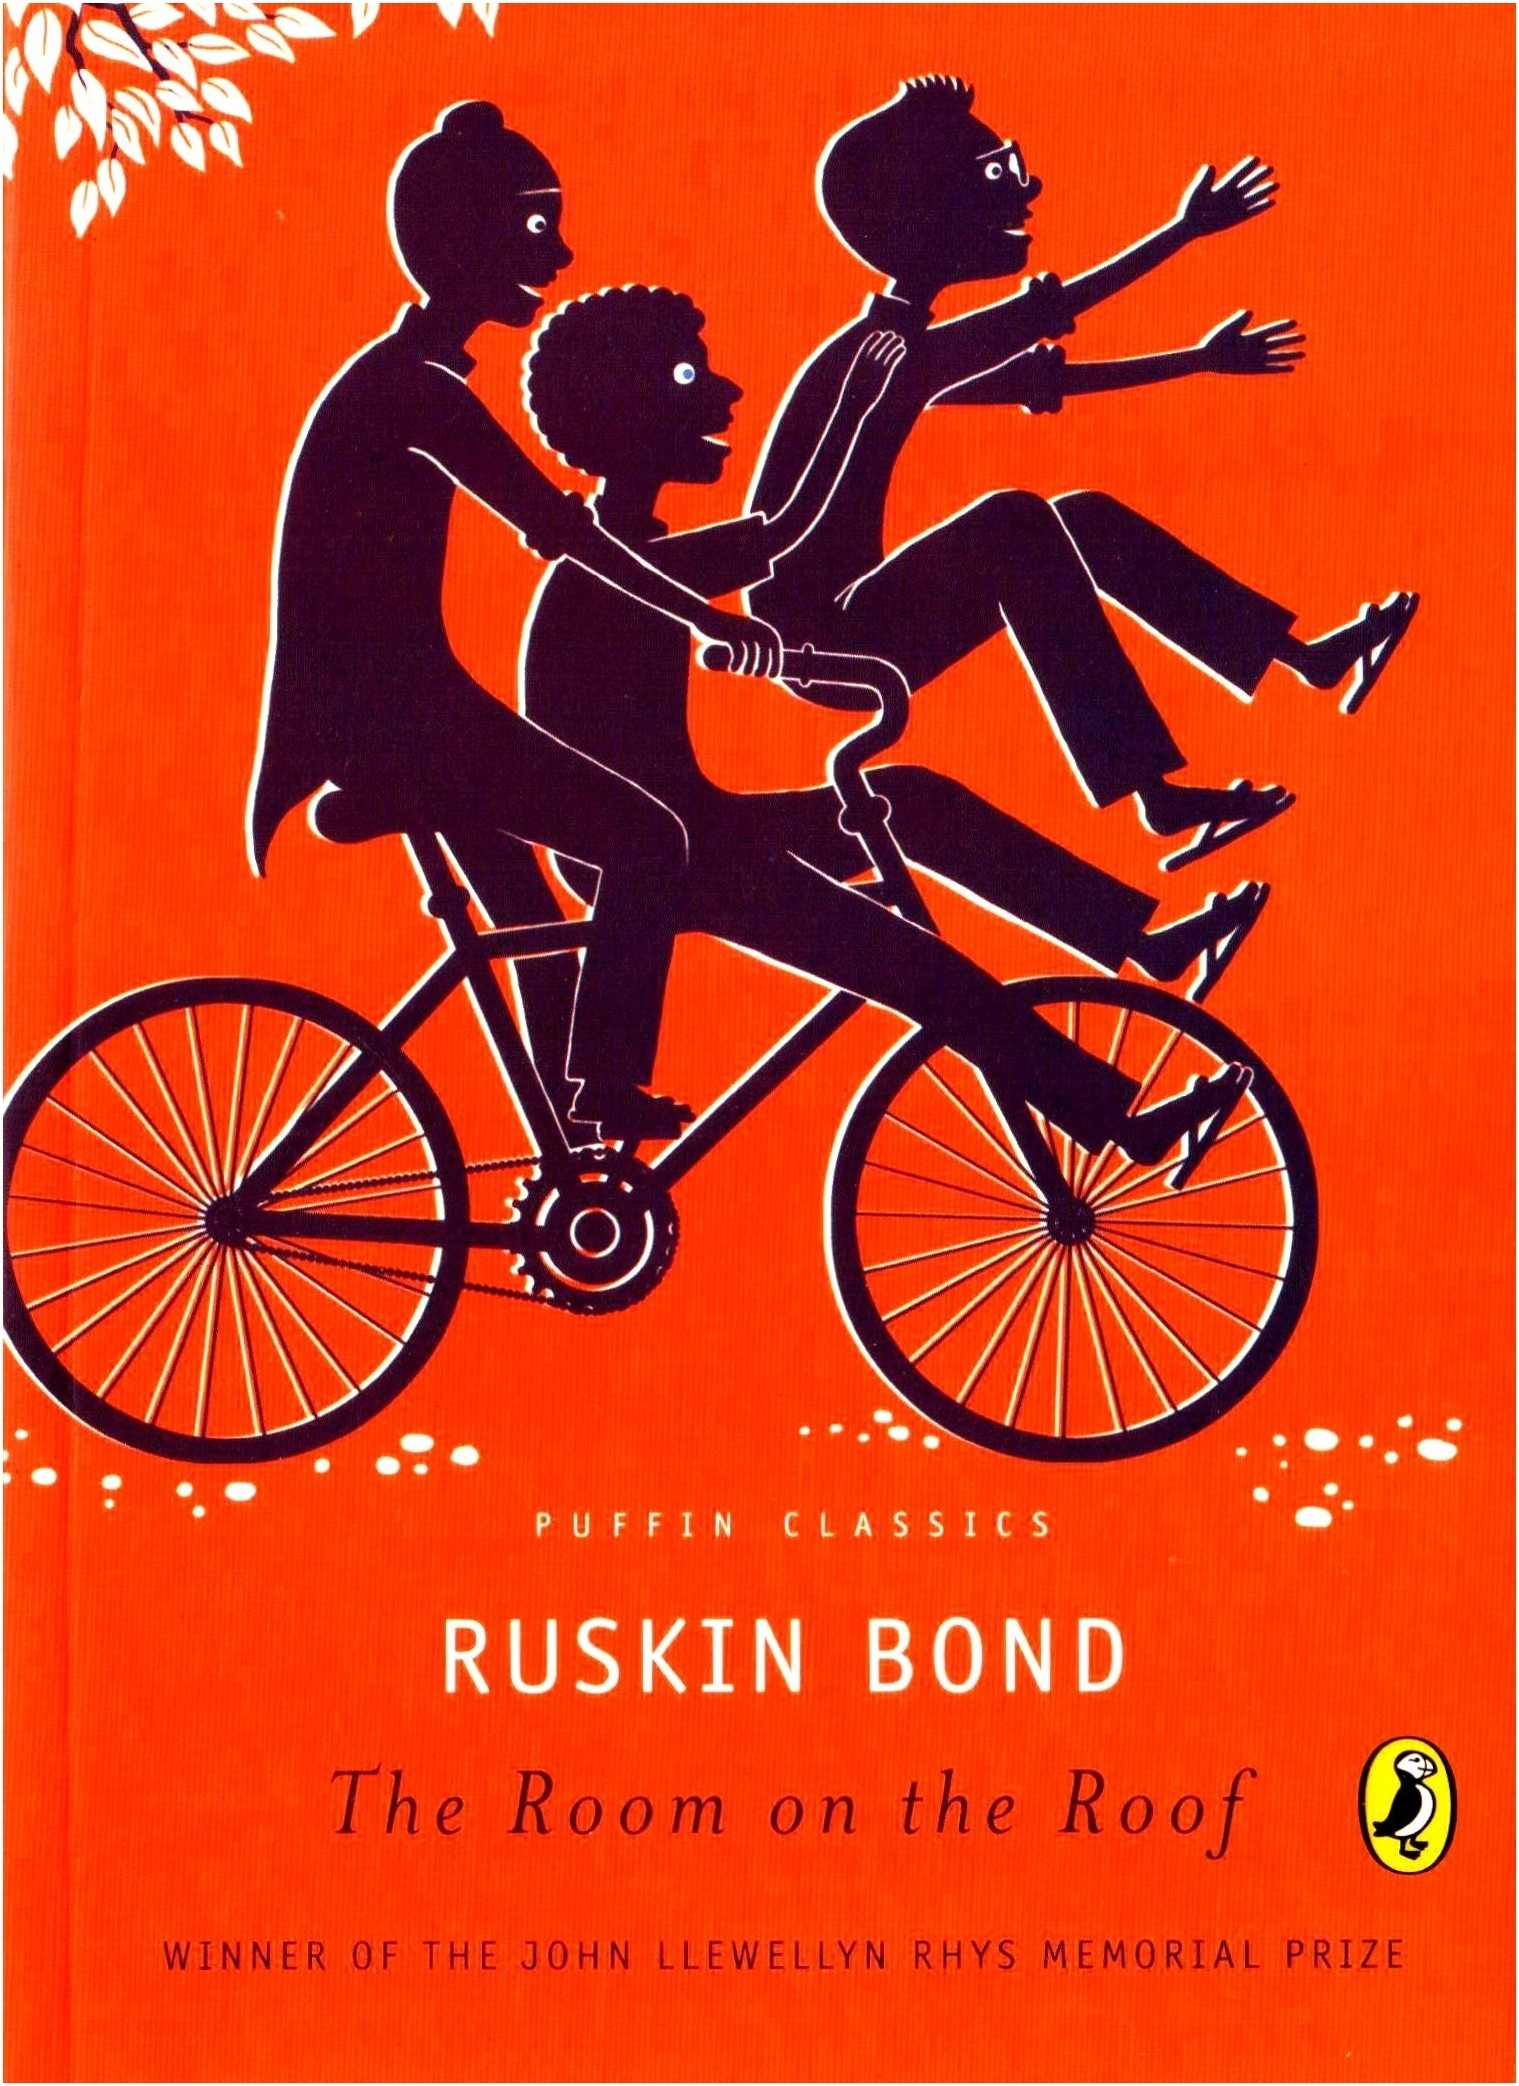 poems by ruskin bond Ruskin bond recently visited bangalore to launch his new book of poems, hip hop nature boy and other poems i had decided to visit the venue but couldn't however, later i visited the bookstore bond had launched the book at and bought the book.